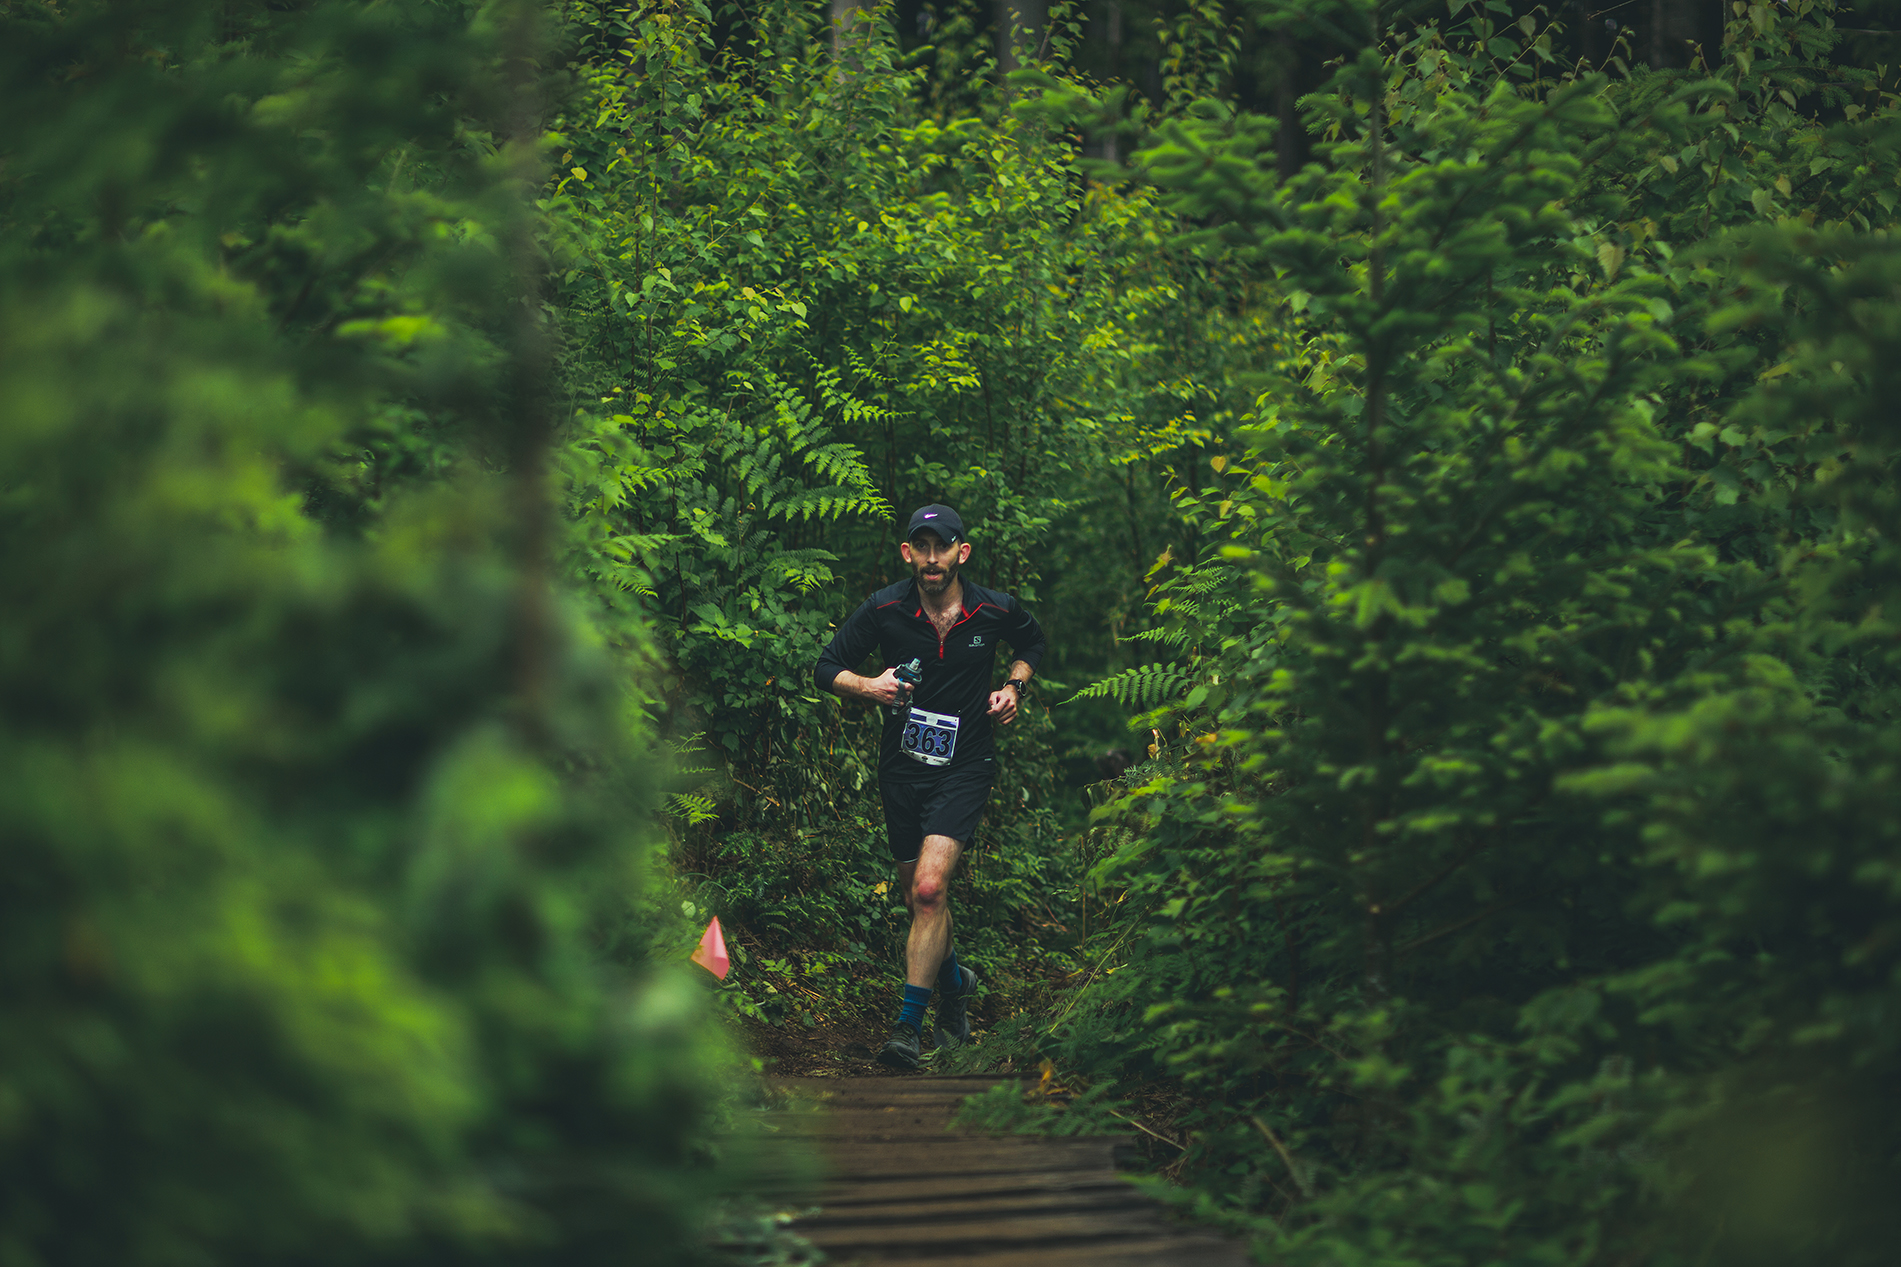 Fraser Valley Trail Races - Bear Mountain - IMG_2391 by Brice Ferre Studio - Vancouver Portrait Adventure and Athlete Photographer.jpg